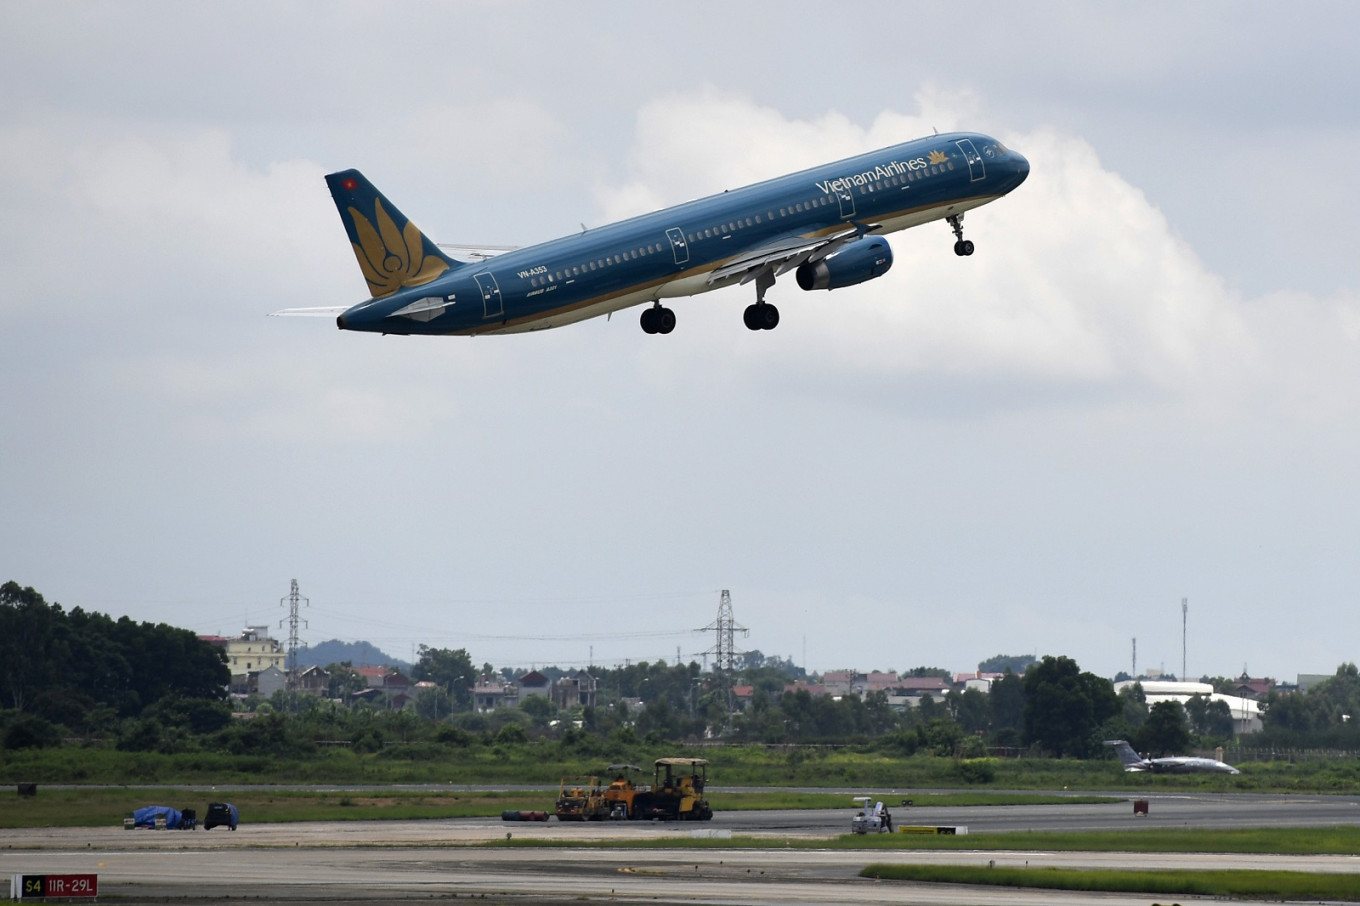 Vietnam airlines resume flights to Taiwan, HK and Macau after govt lifts bans